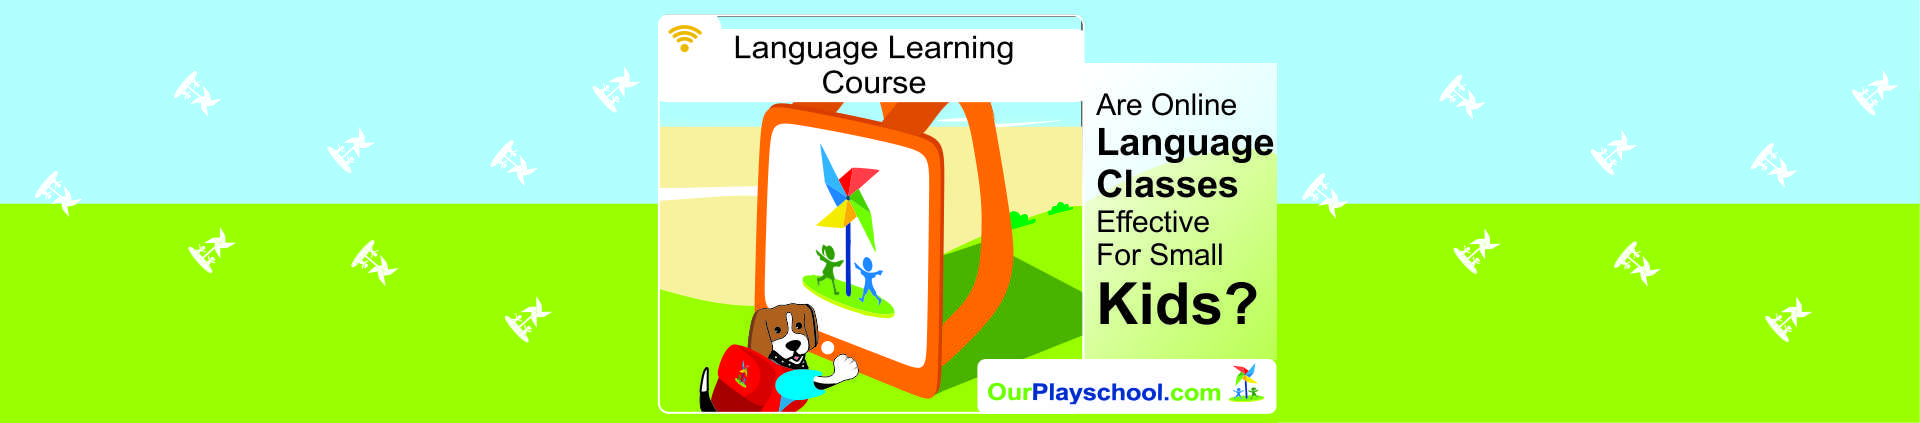 Benefits of Multiple Online Language Learning Classes